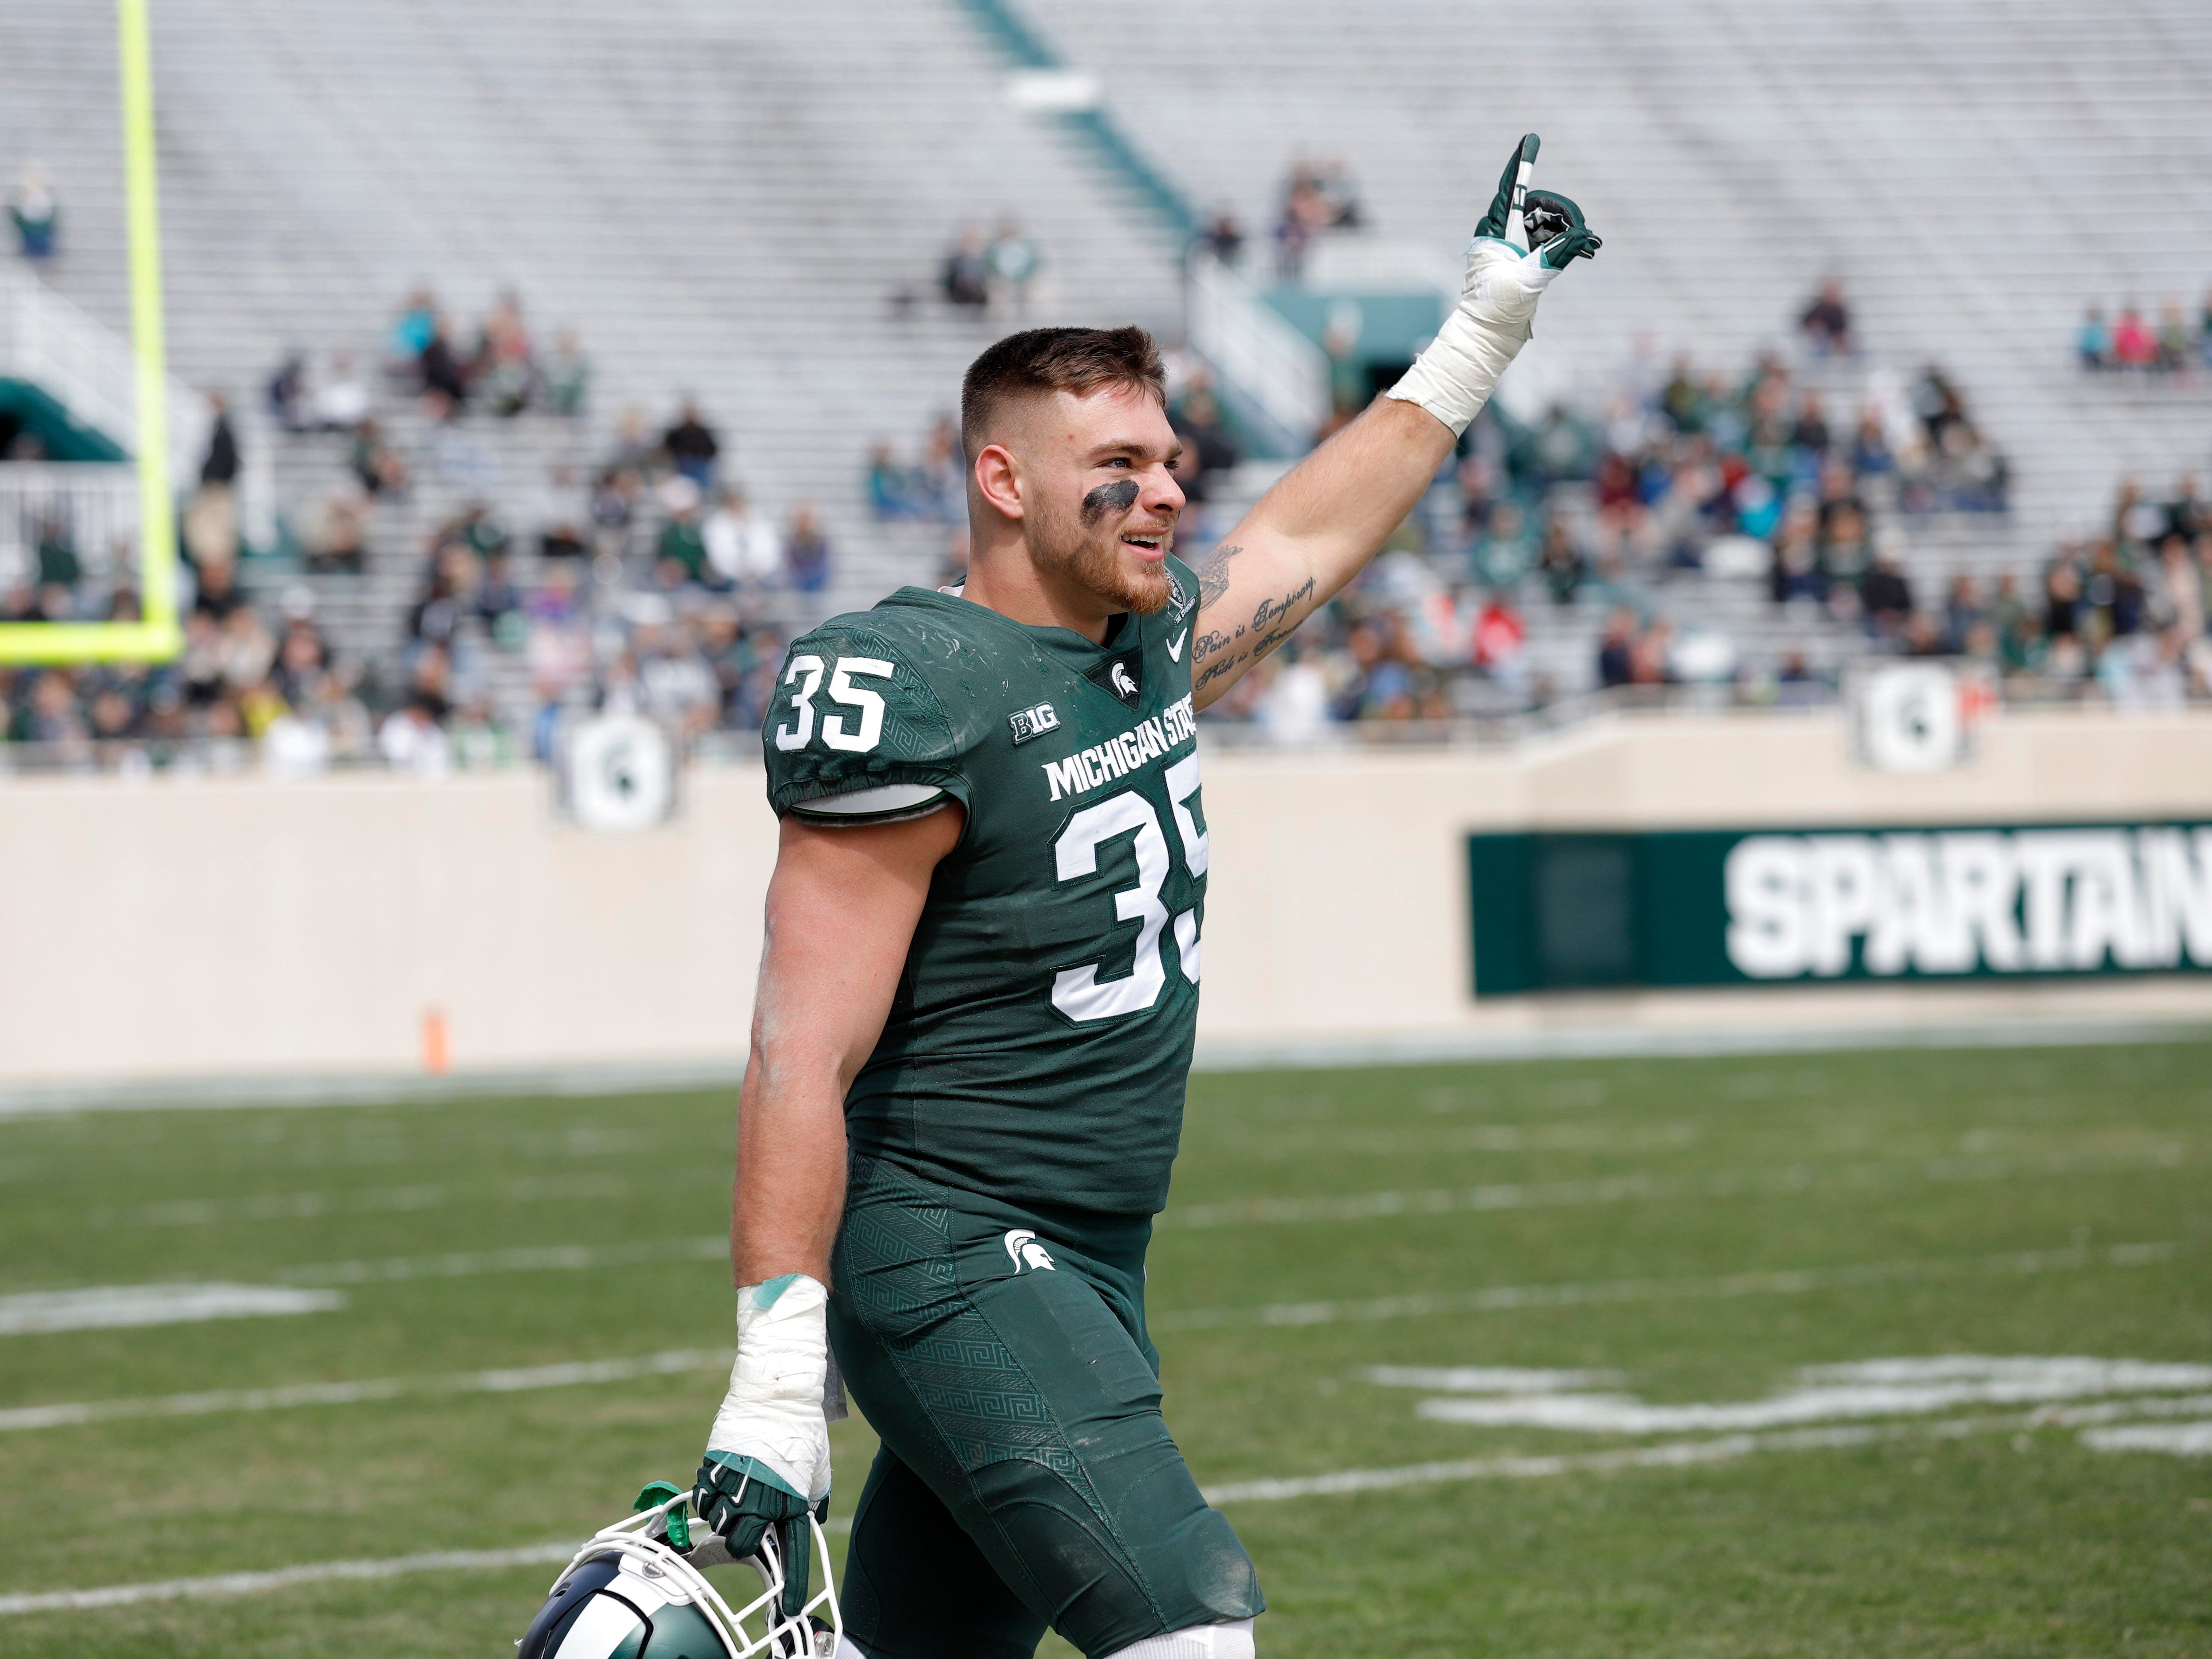 Michigan State lineback Joe Bachie reacts during an NCAA college football spring scrimmage game, Saturday, April 13, 2019, in East Lansing, Mich. (AP Photo/Al Goldis)